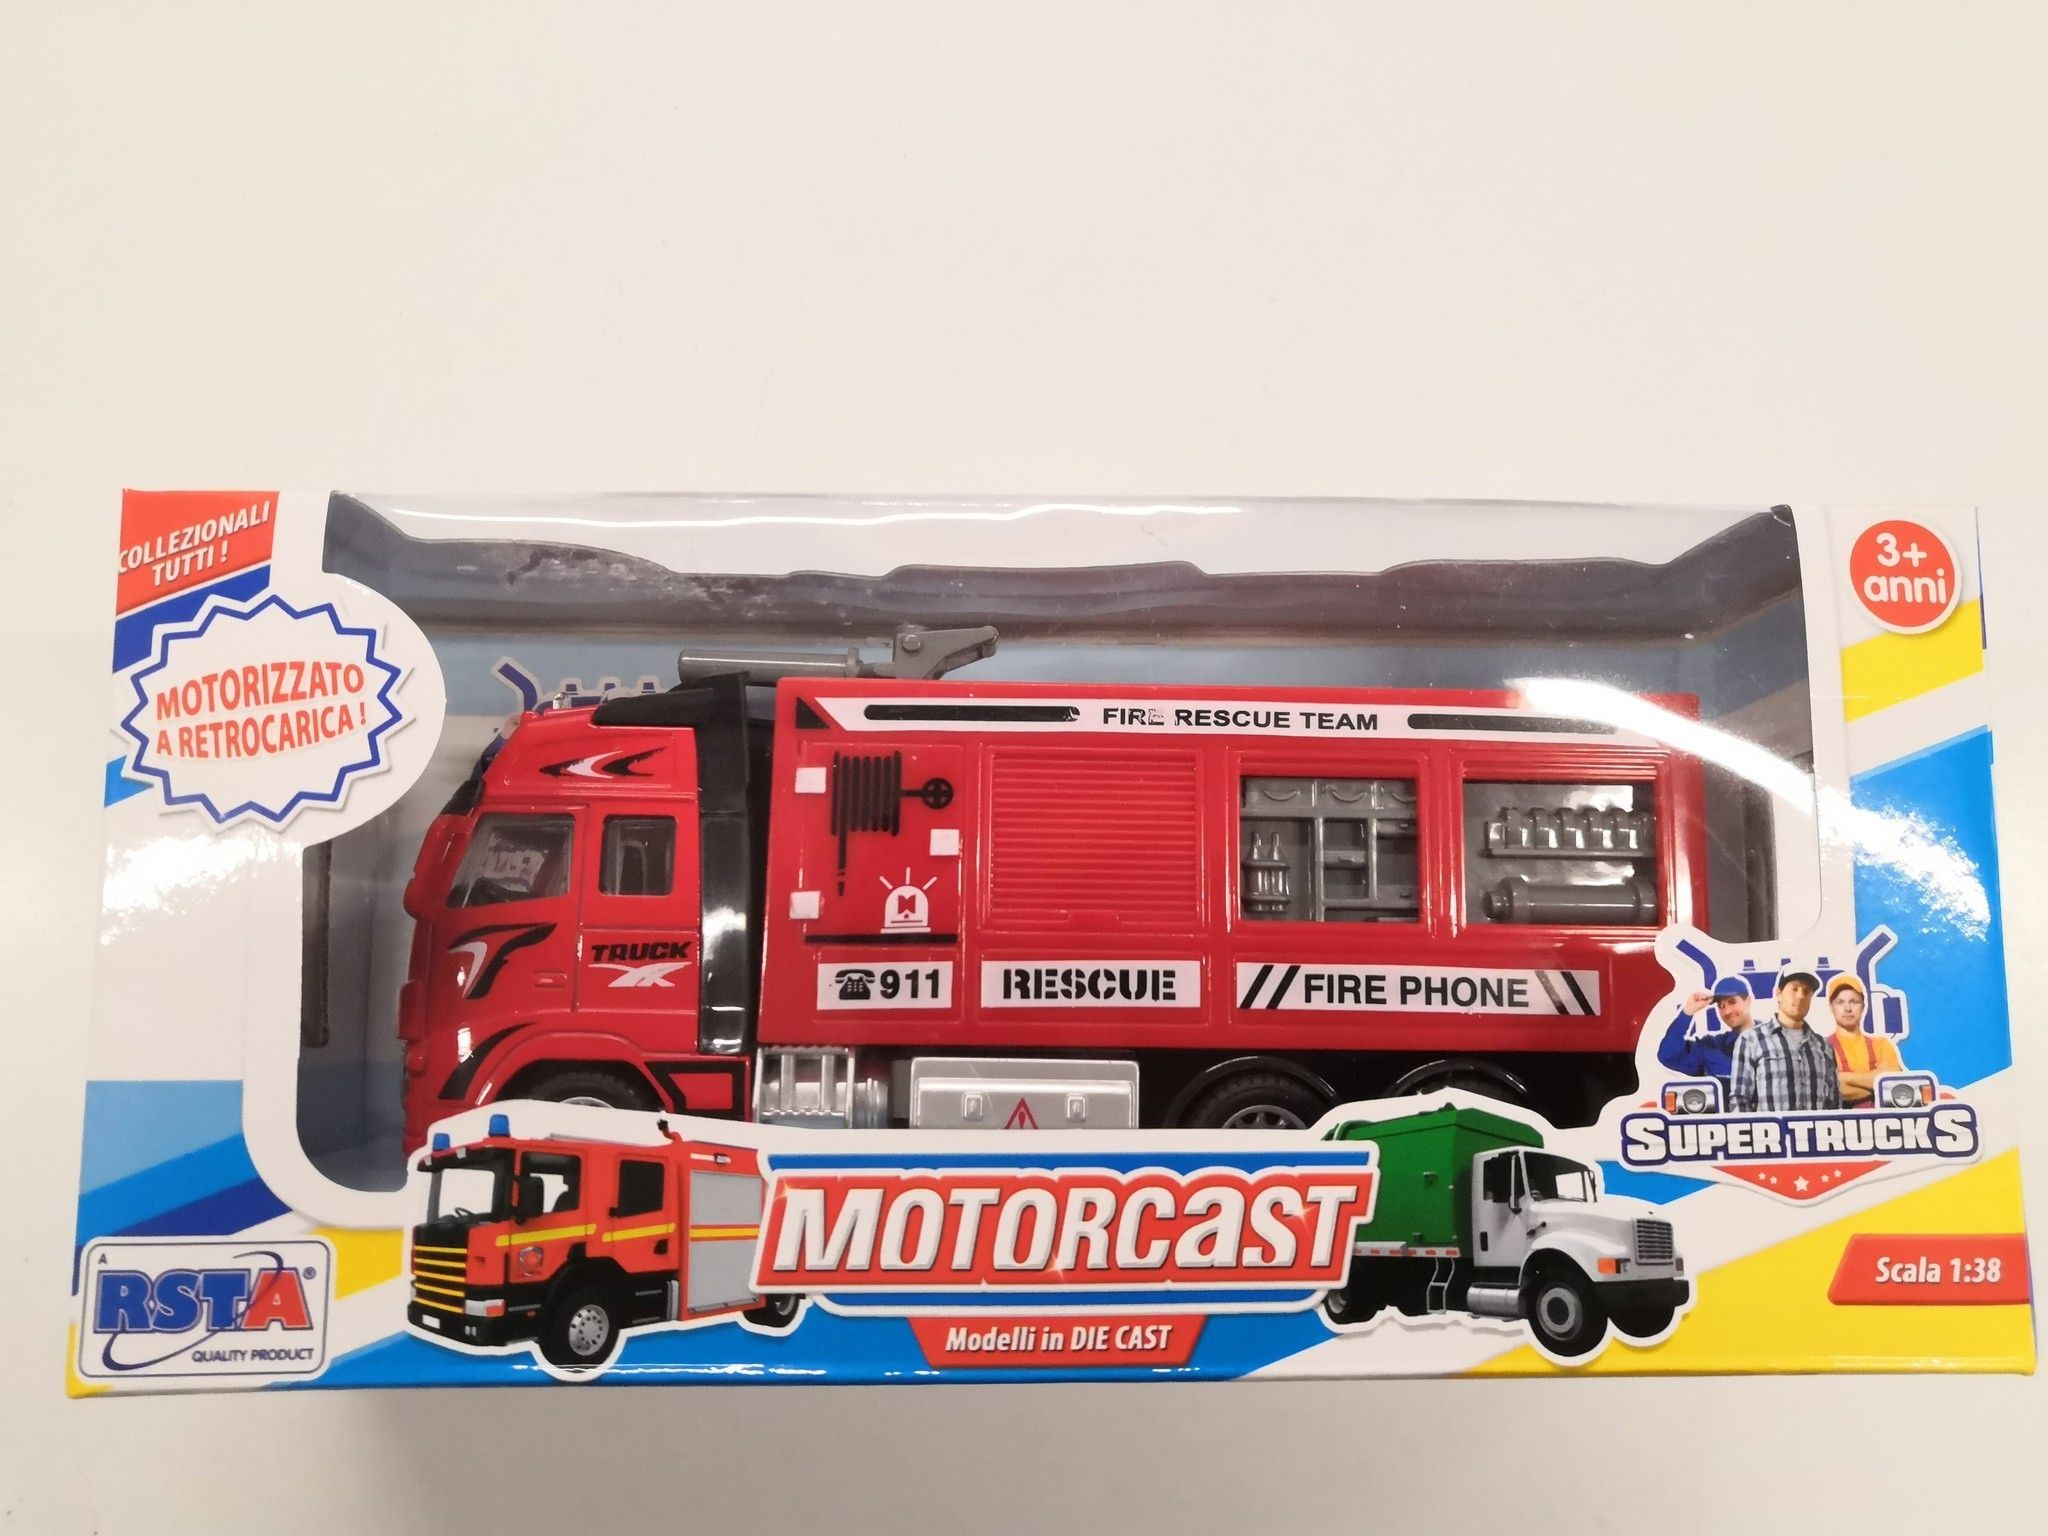 RONCHI SUPERTOYS SRL- 10579 Camion Die Cast, Multicolore